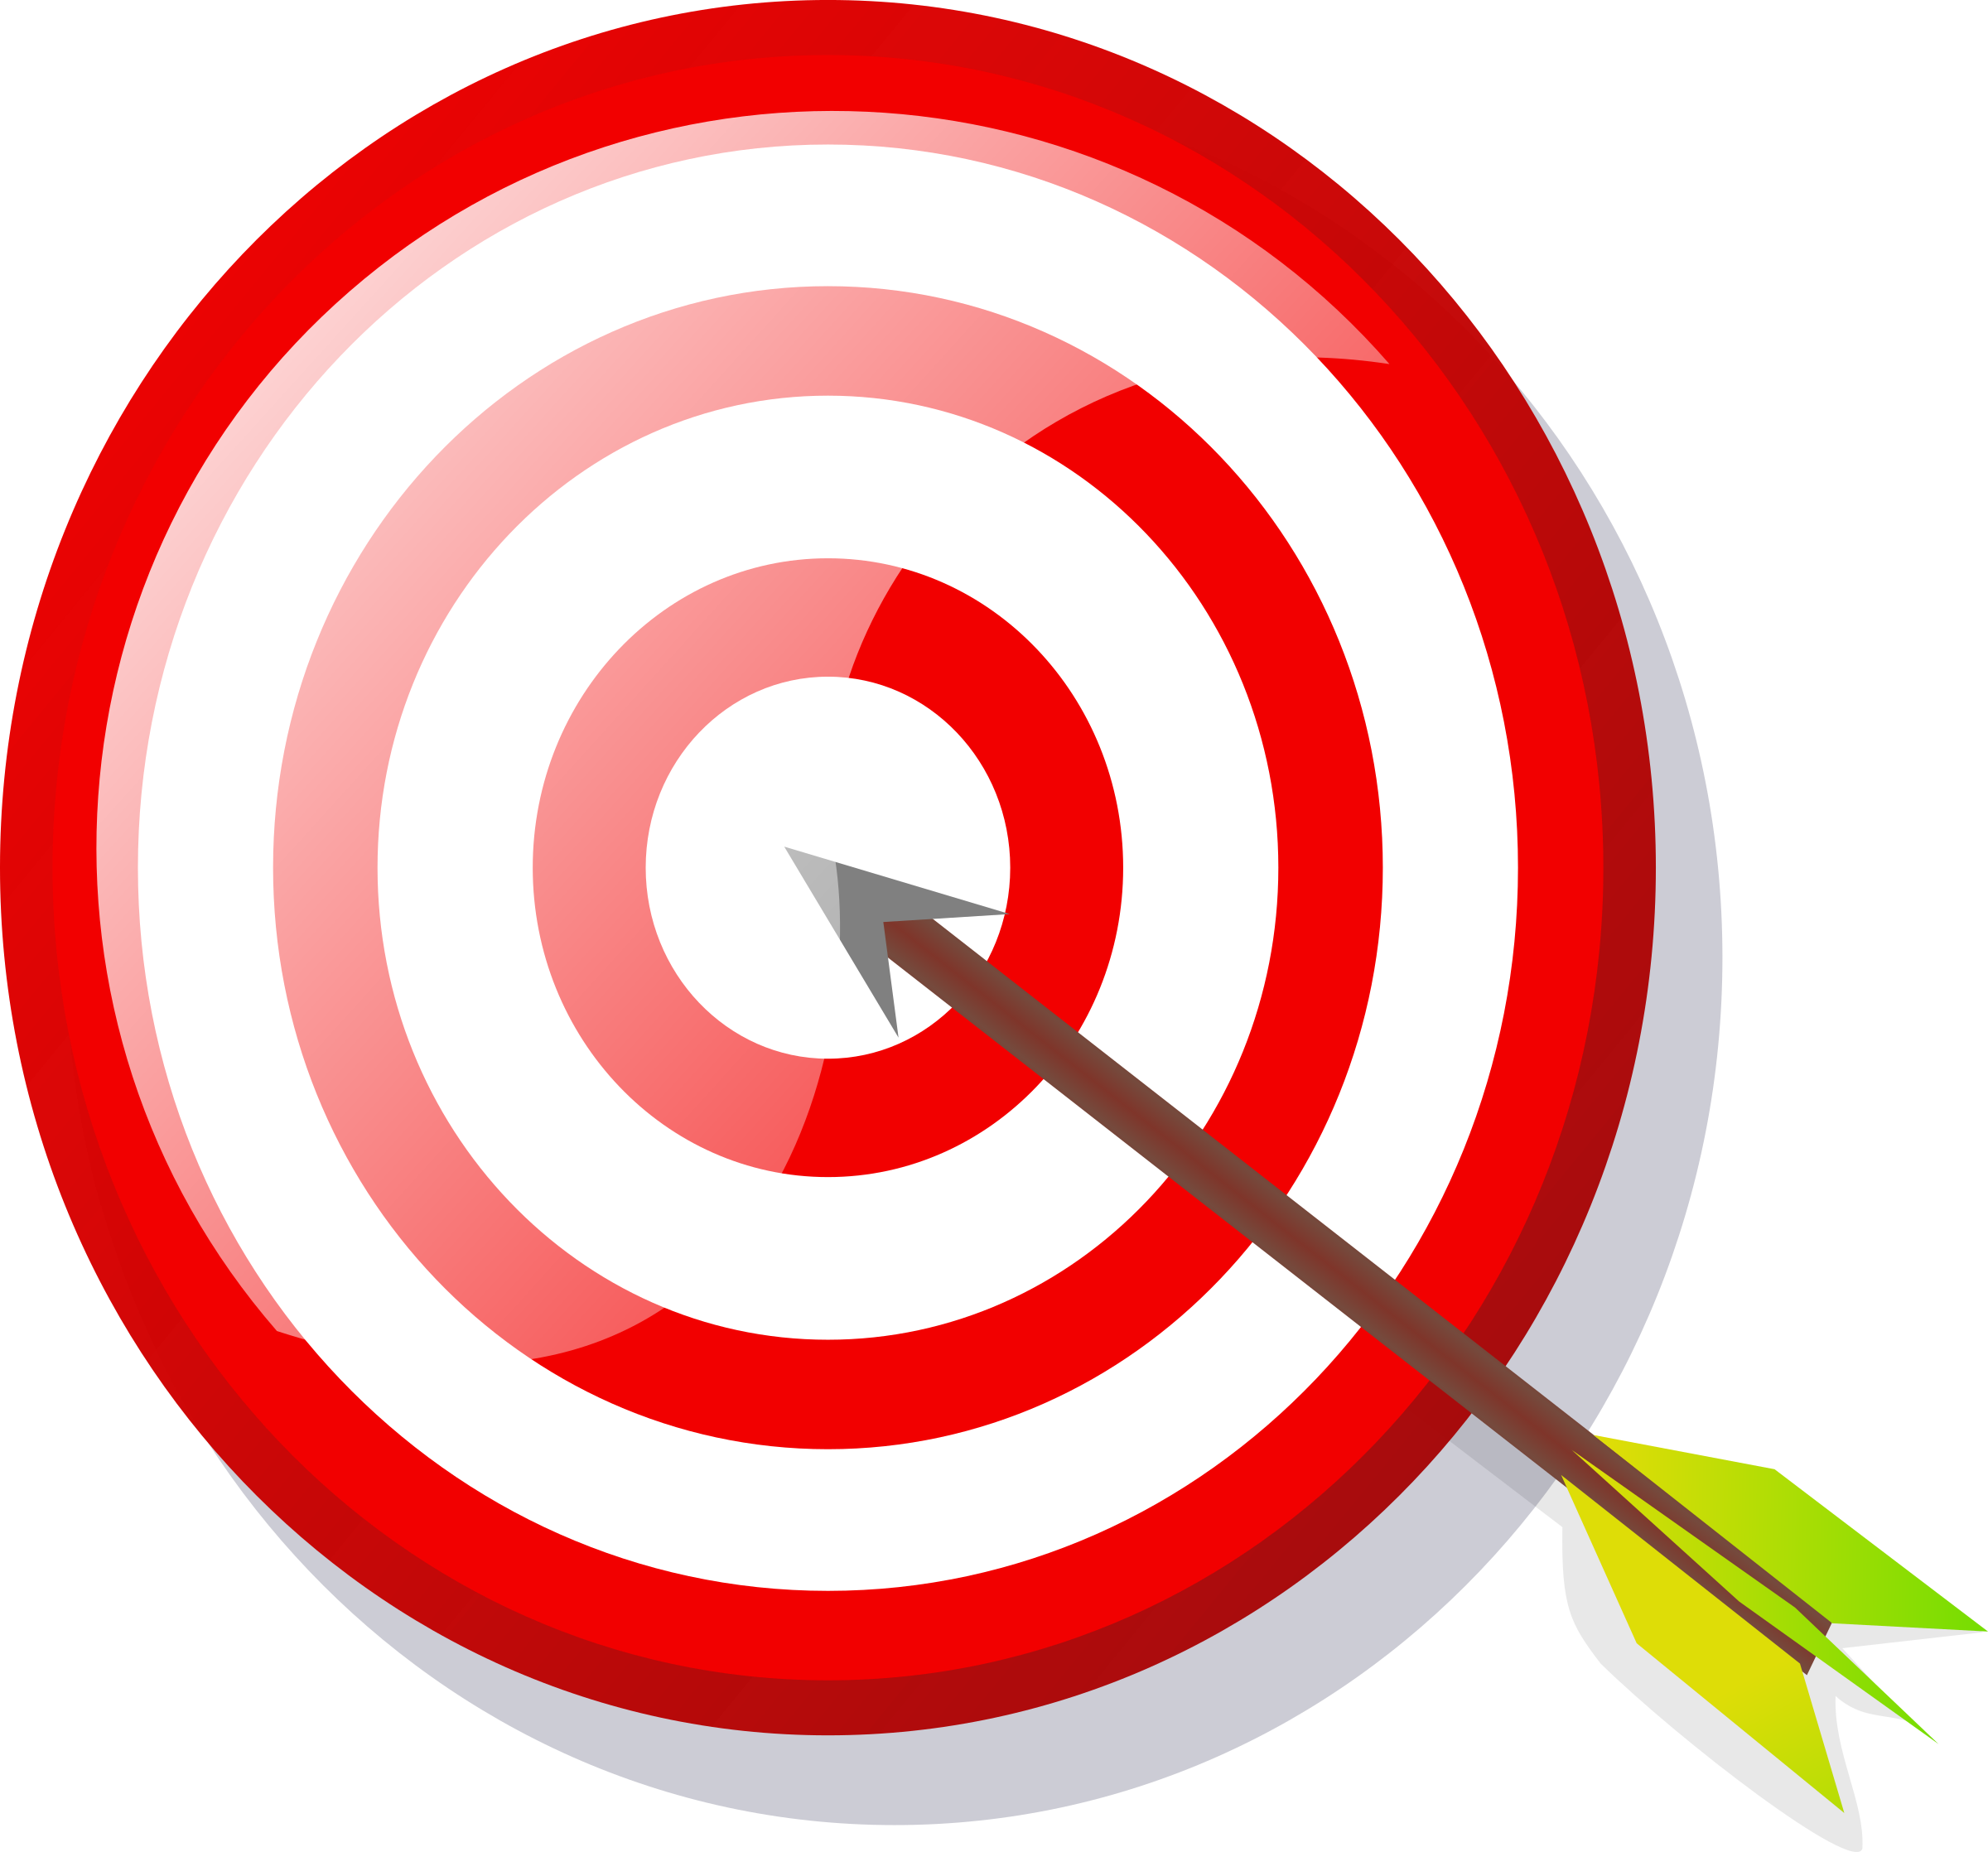 Motivation clipart goal target. With arrow big image